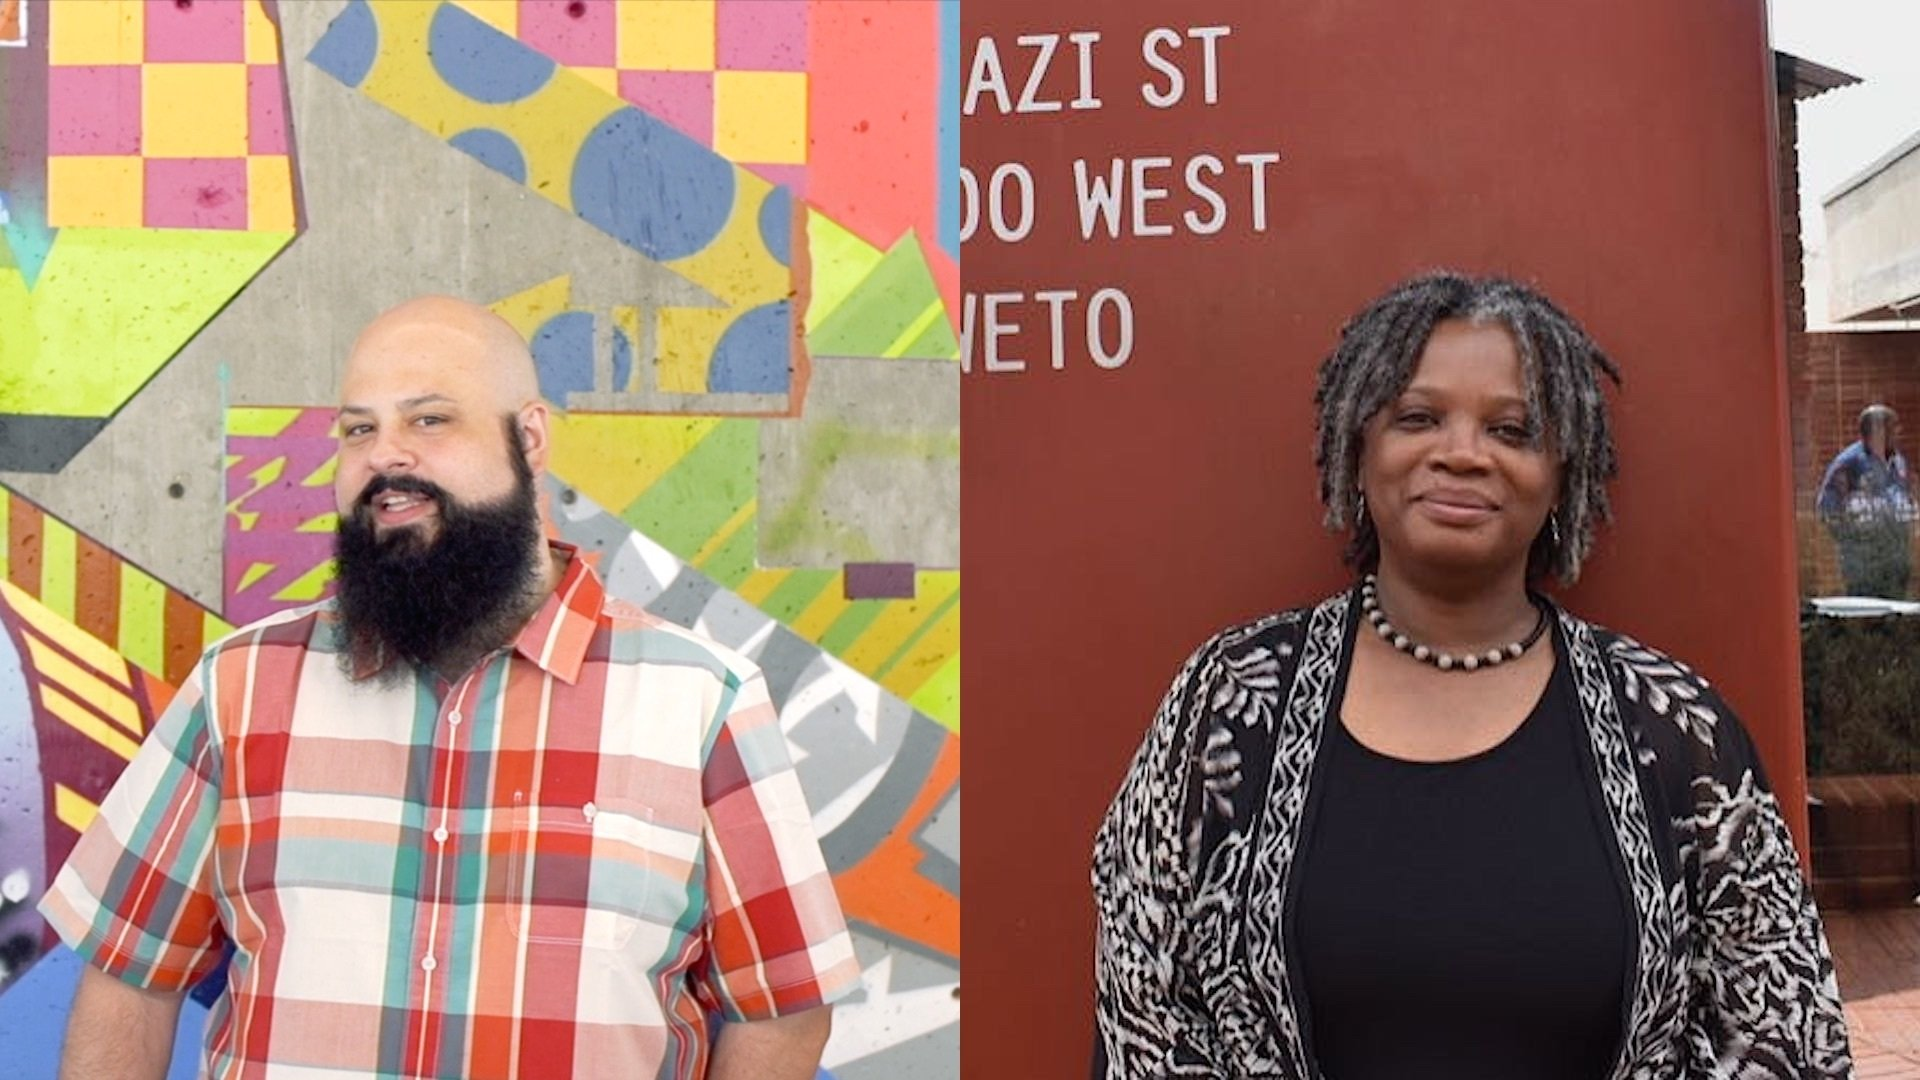 Andy Vitale, left, standing against a colourful background and Lisa Welchman, right, standing against a copper-coloured wall.